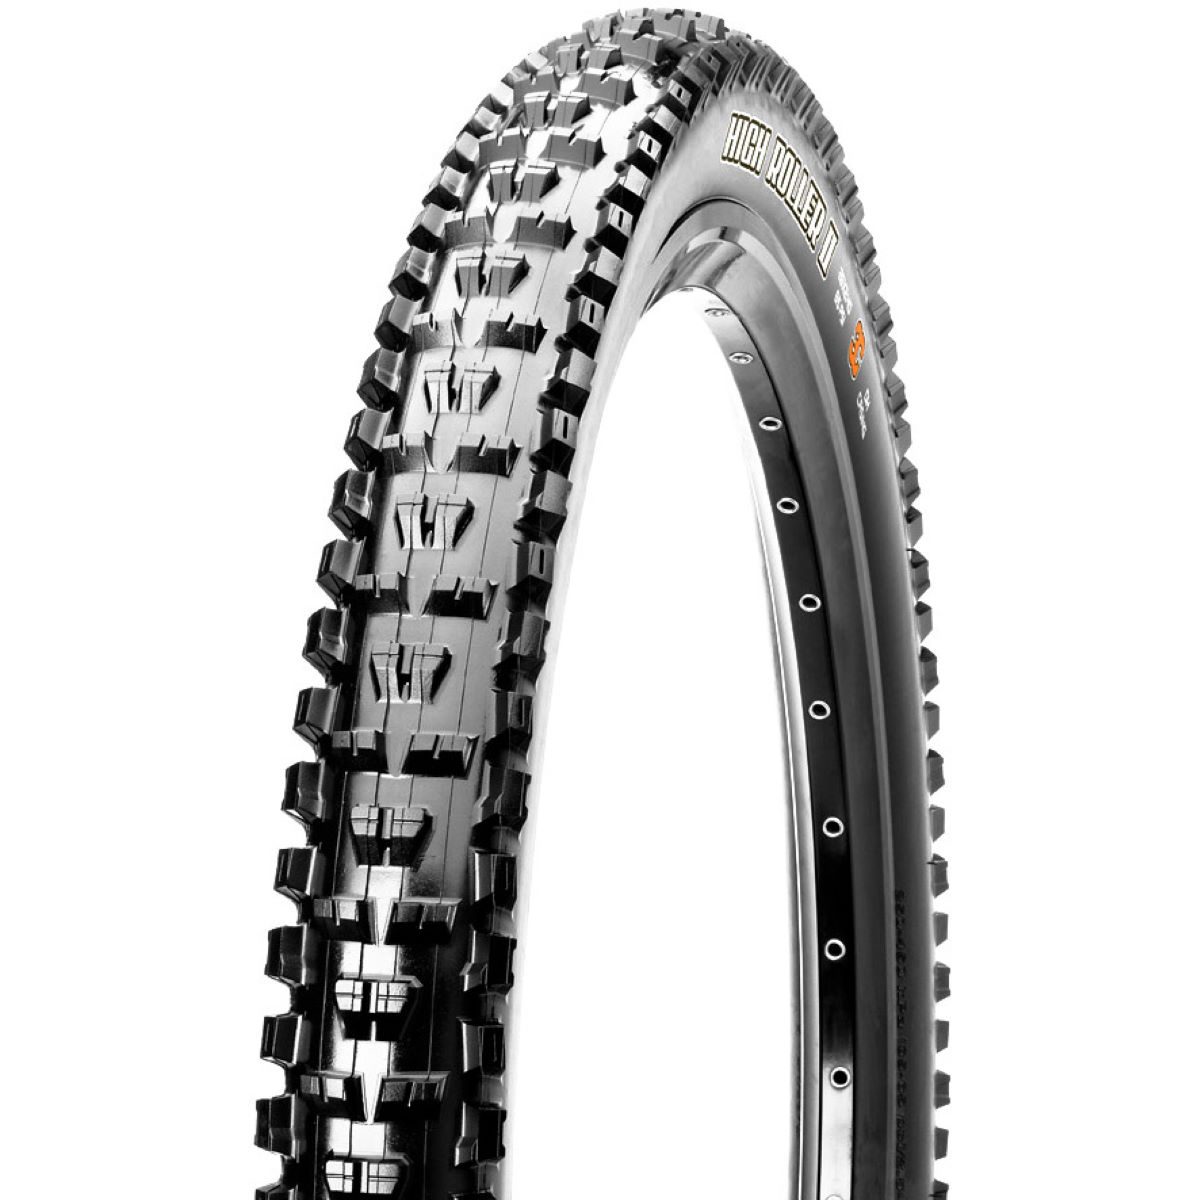 Pneu VTT Maxxis High Roller II Wired - 2.4' 27.5' Noir Pneus